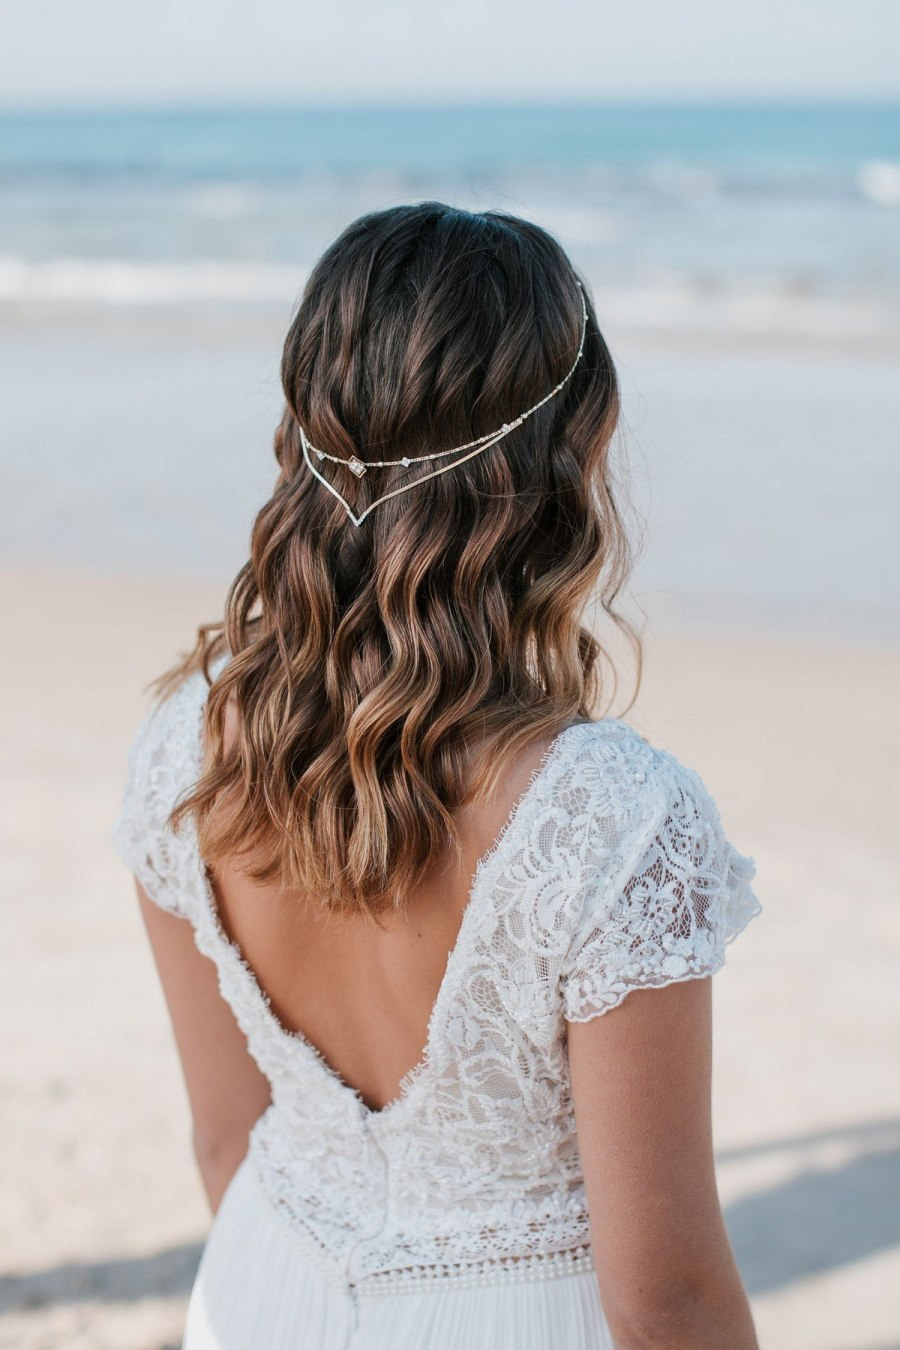 Boho chic is an amazing style for a wedding, it's so relaxing, light, airy – and you look like a forest fairy!